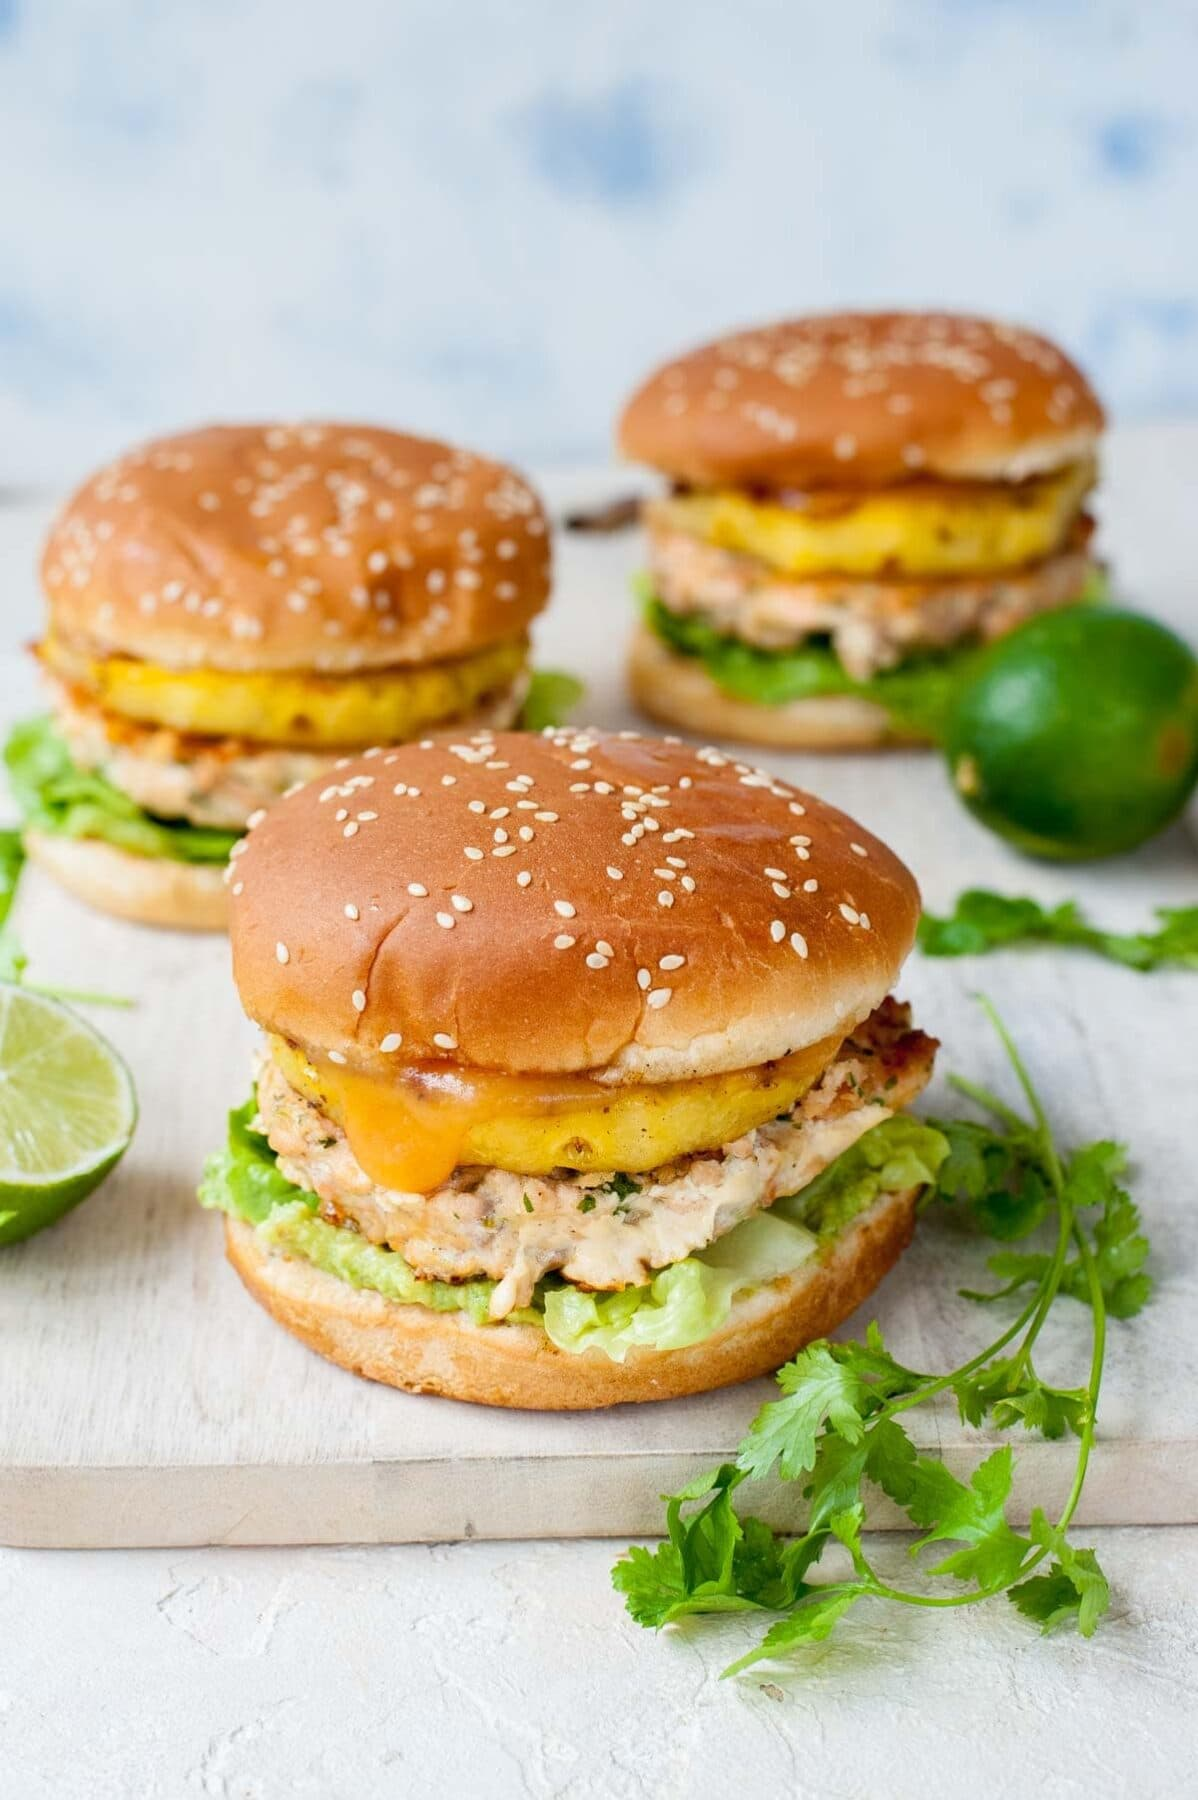 Three salmon burgers with pineapple and guacamole on a beige wooden chopping board.